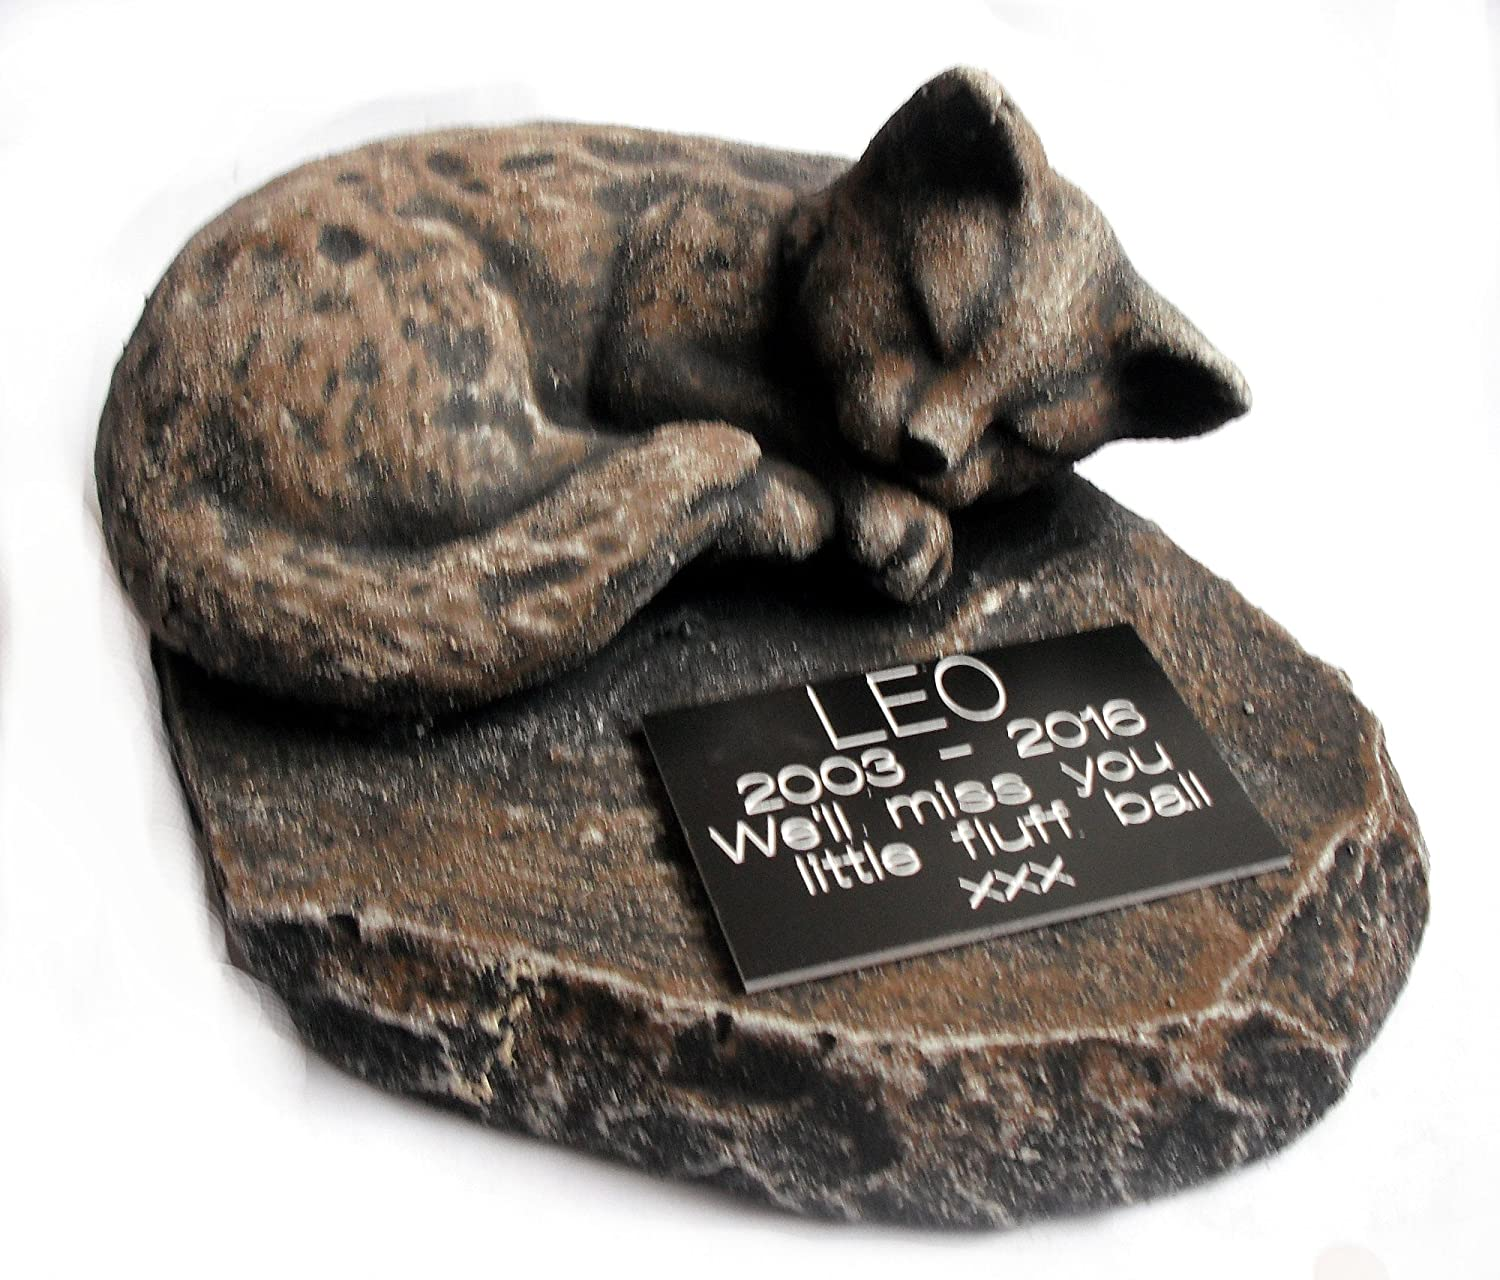 ClassCast Larger Sleeping CAT MEMORIAL PERSONALISED Stone Genuine Free shopping Shipping Rock S